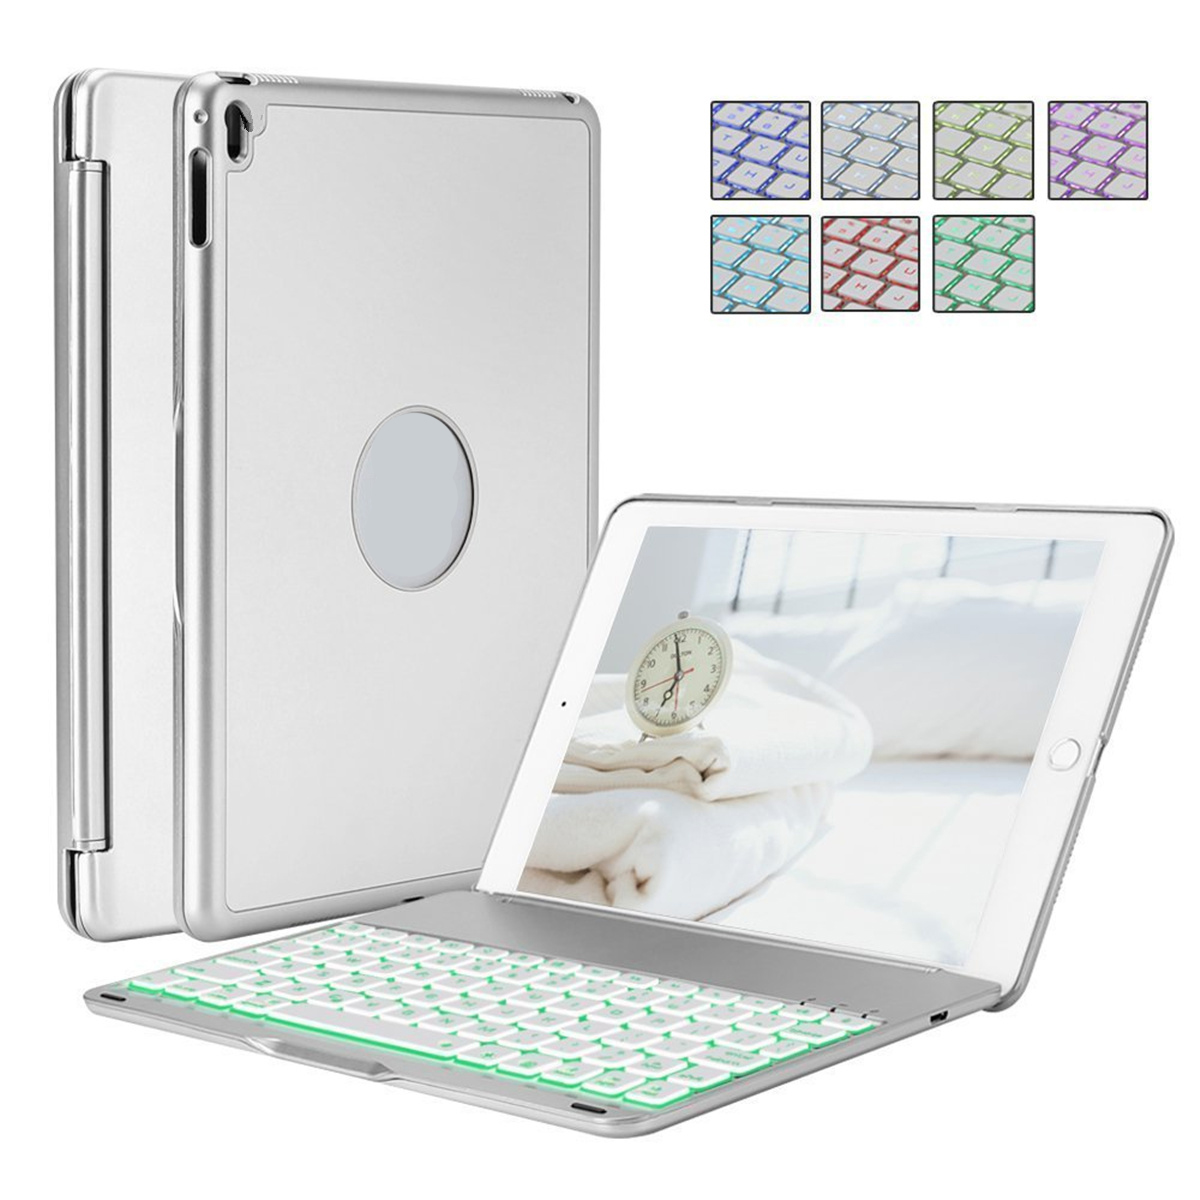 10.5inch Wireless Bluetooth Keyboard for iPad Pro 10.5/ iPad Air3 Colorful Backlit Silver grey